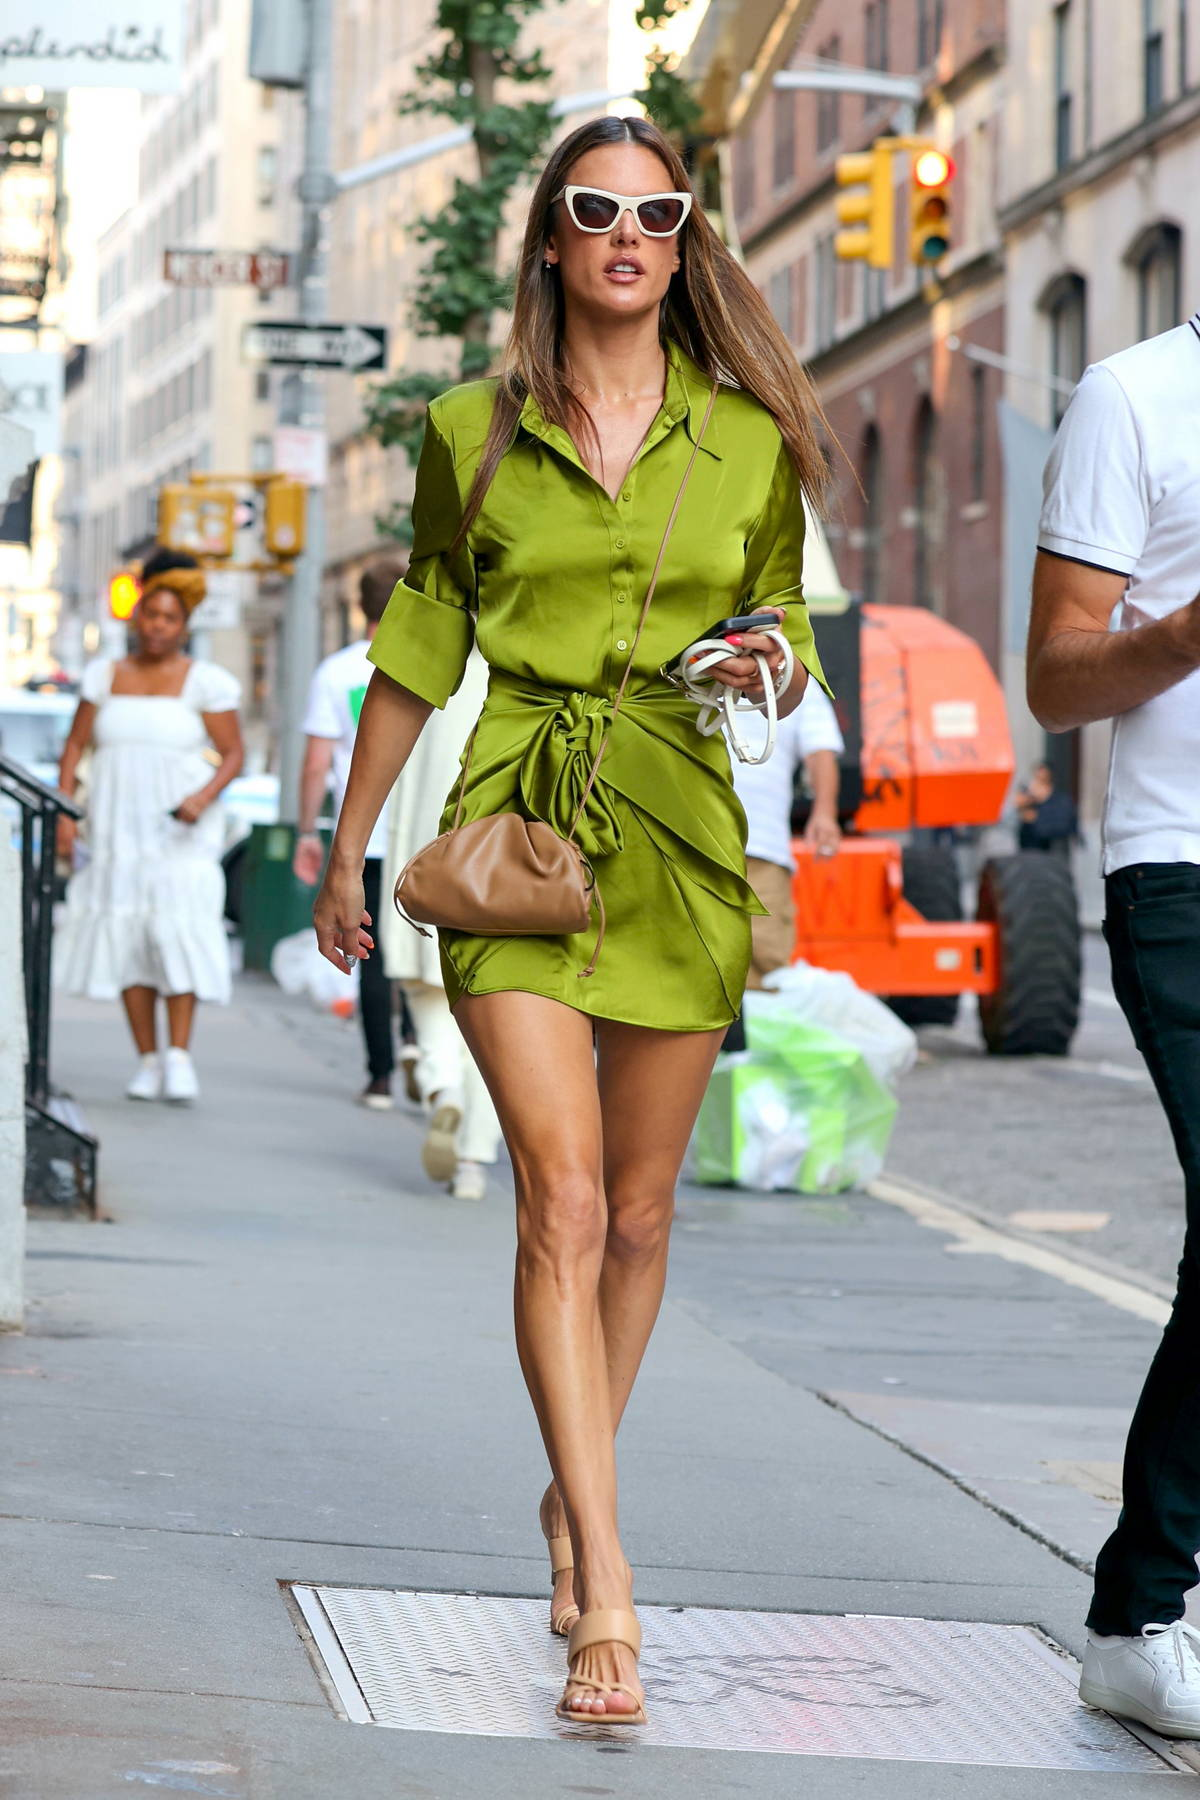 Alessandra Ambrosio looks incredible in a green mini dress while stepping out in Soho, New York City